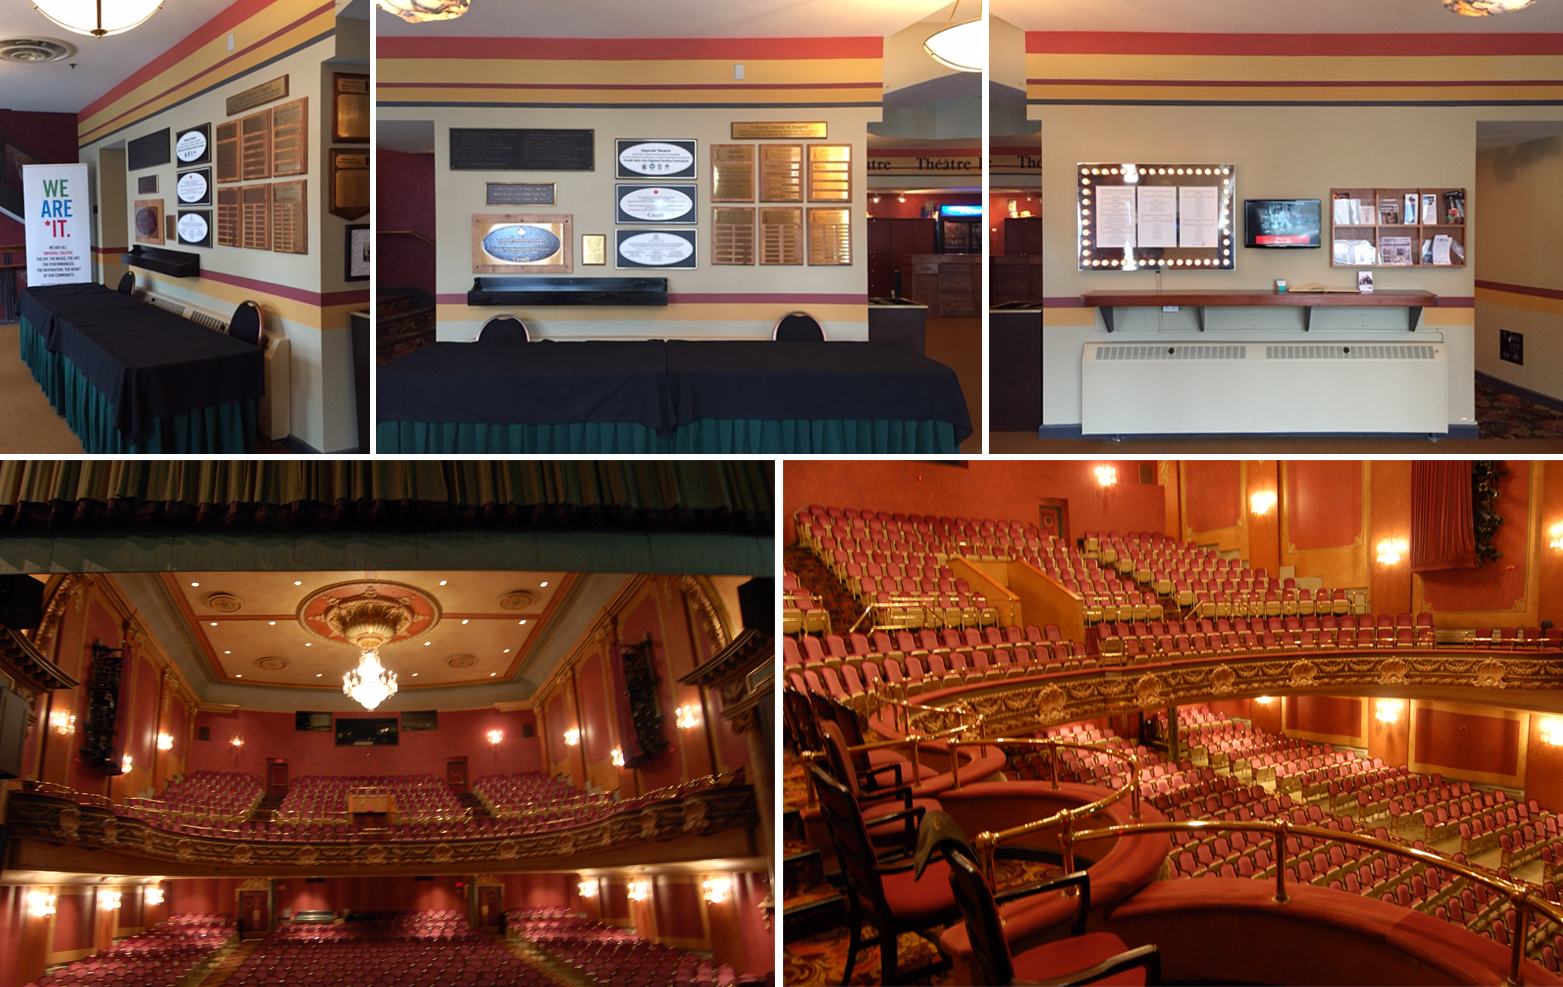 Photos of the current Imperial Theater (above) Entry Donor Walls (below) Theater Interior